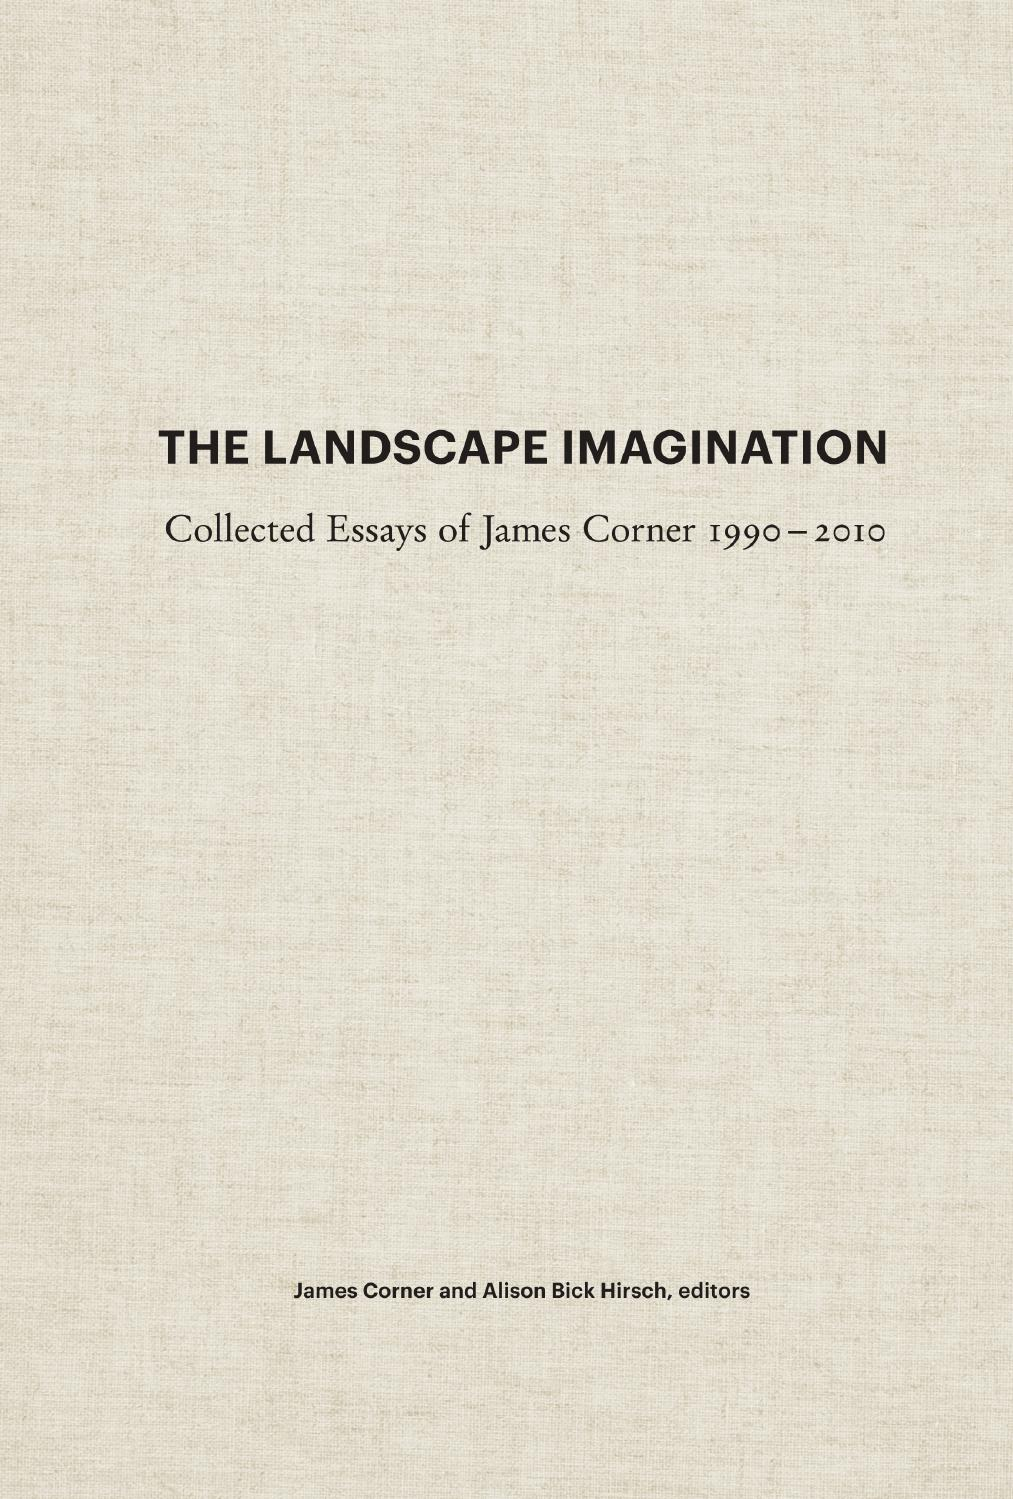 landscape imagination by princeton architectural press